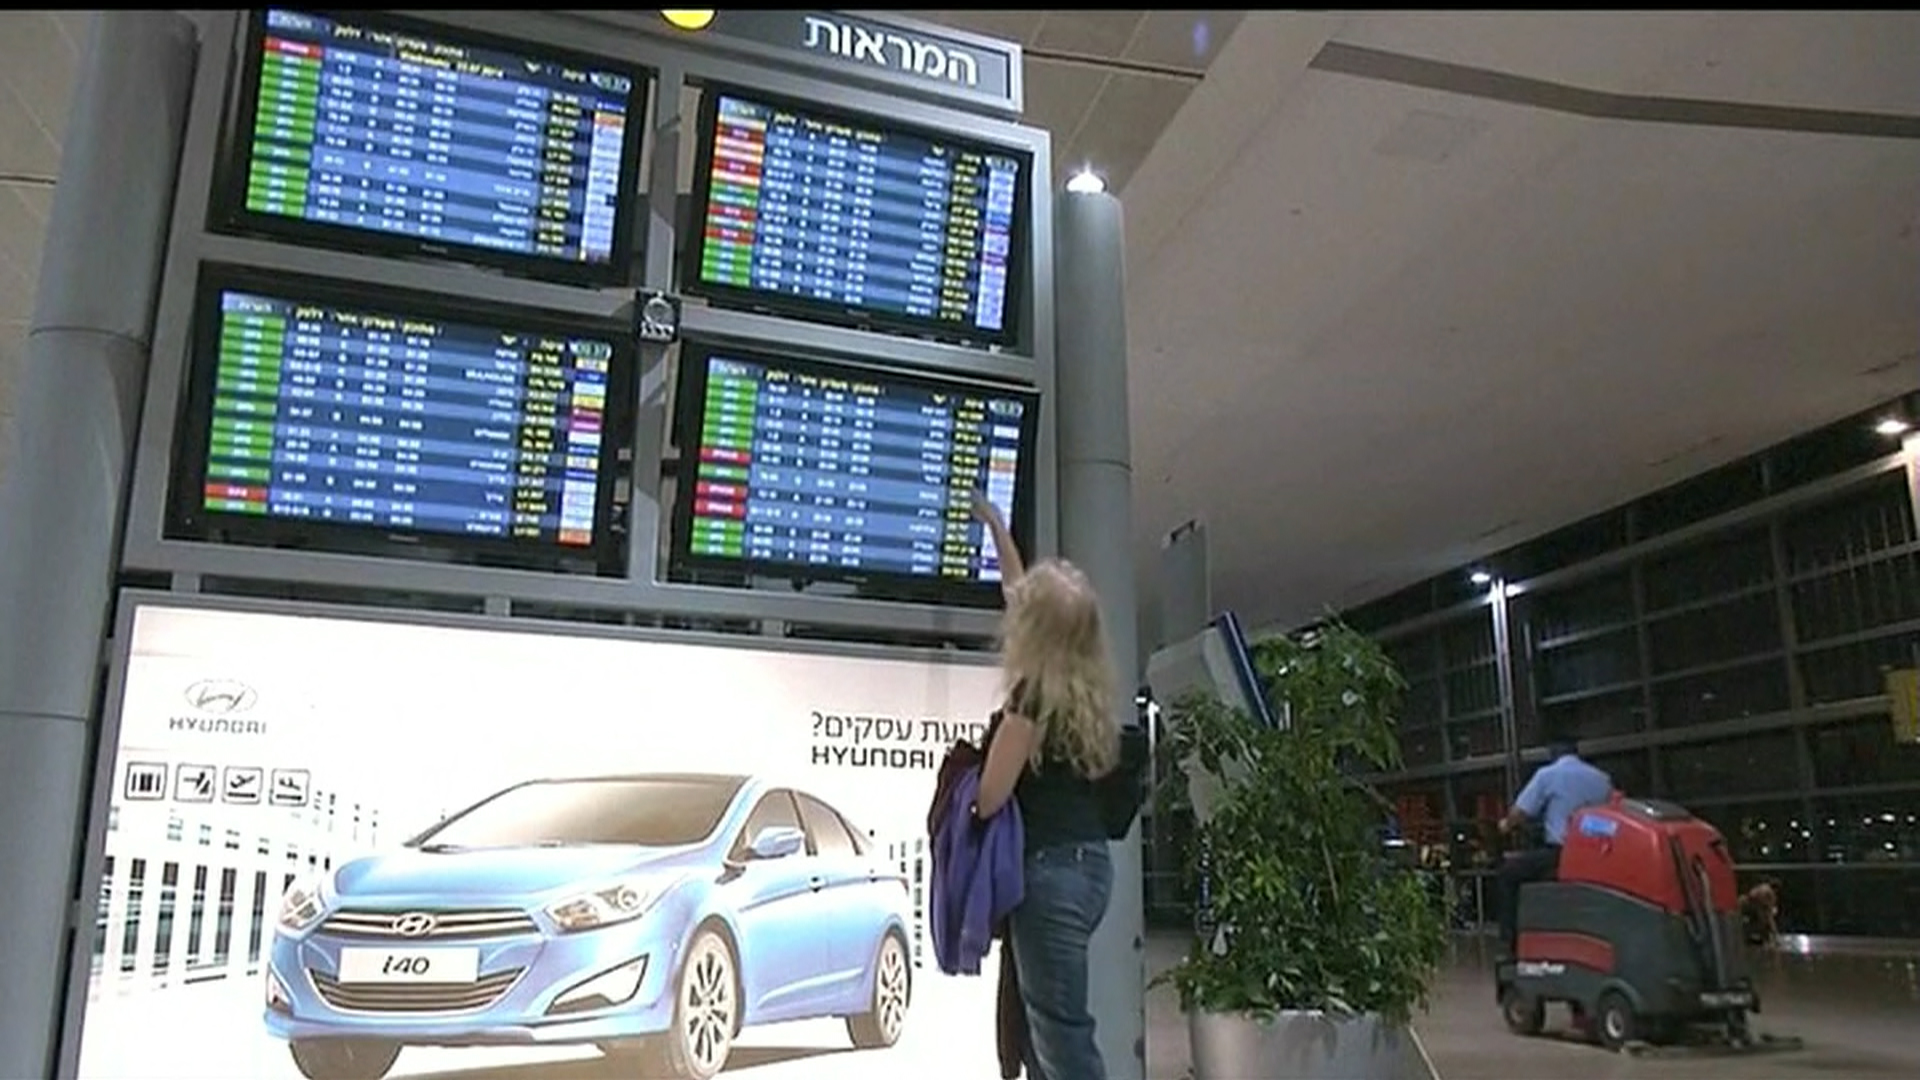 Missile Fears: Feds Ban Airlines From Flying to Tel Aviv Airport